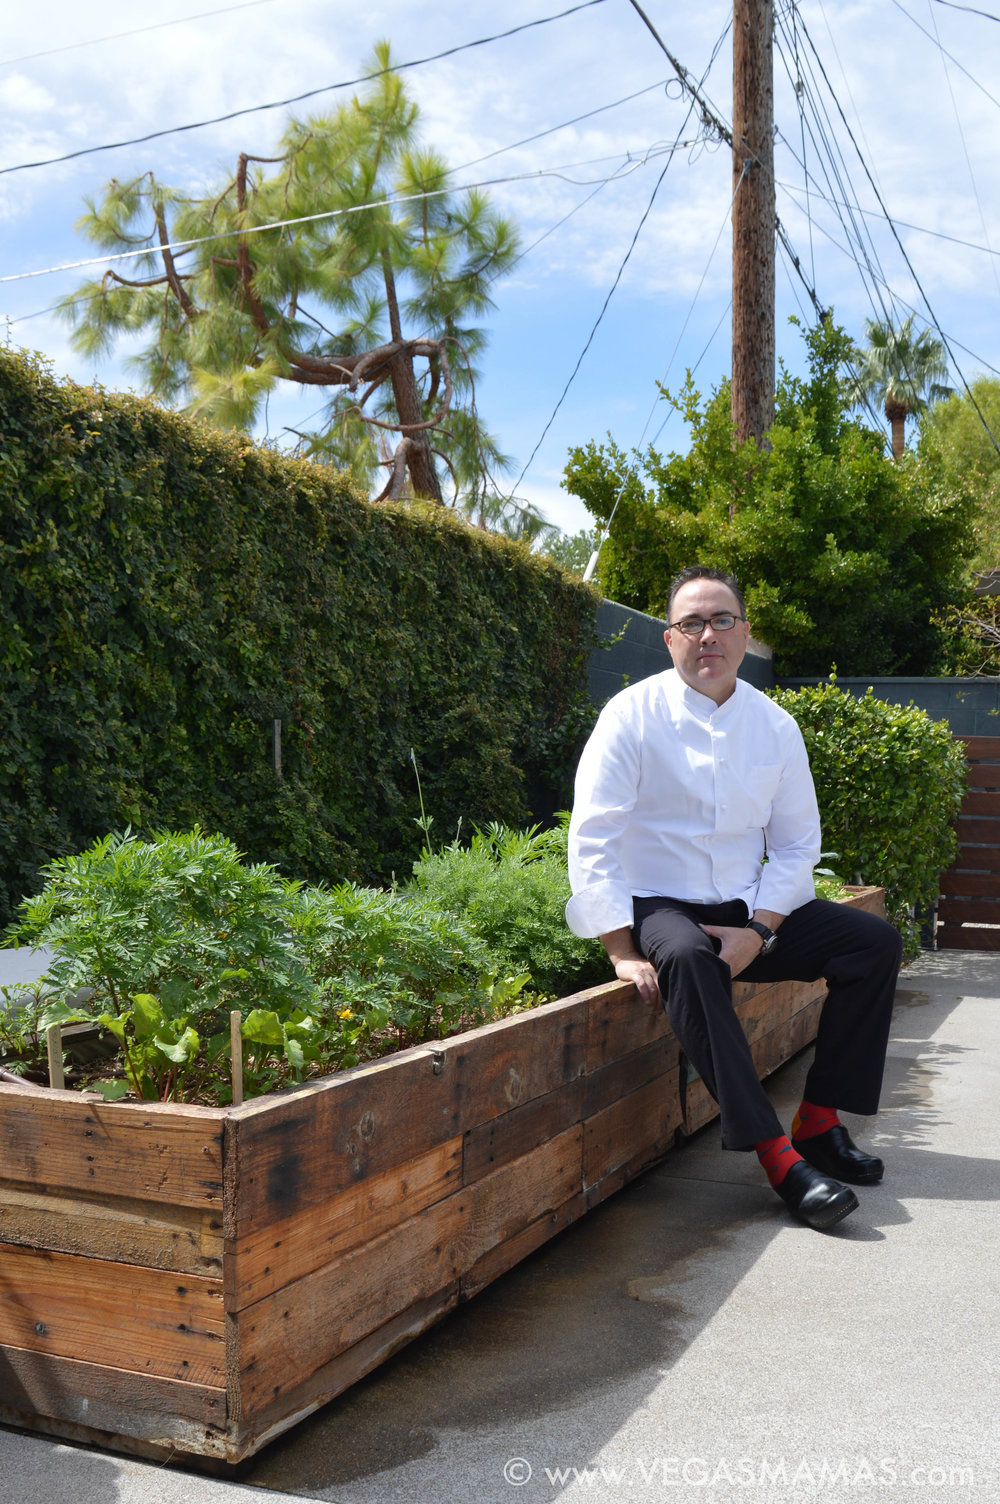 Mark Andelbradt, Michele's husband, seated next to his organic garden